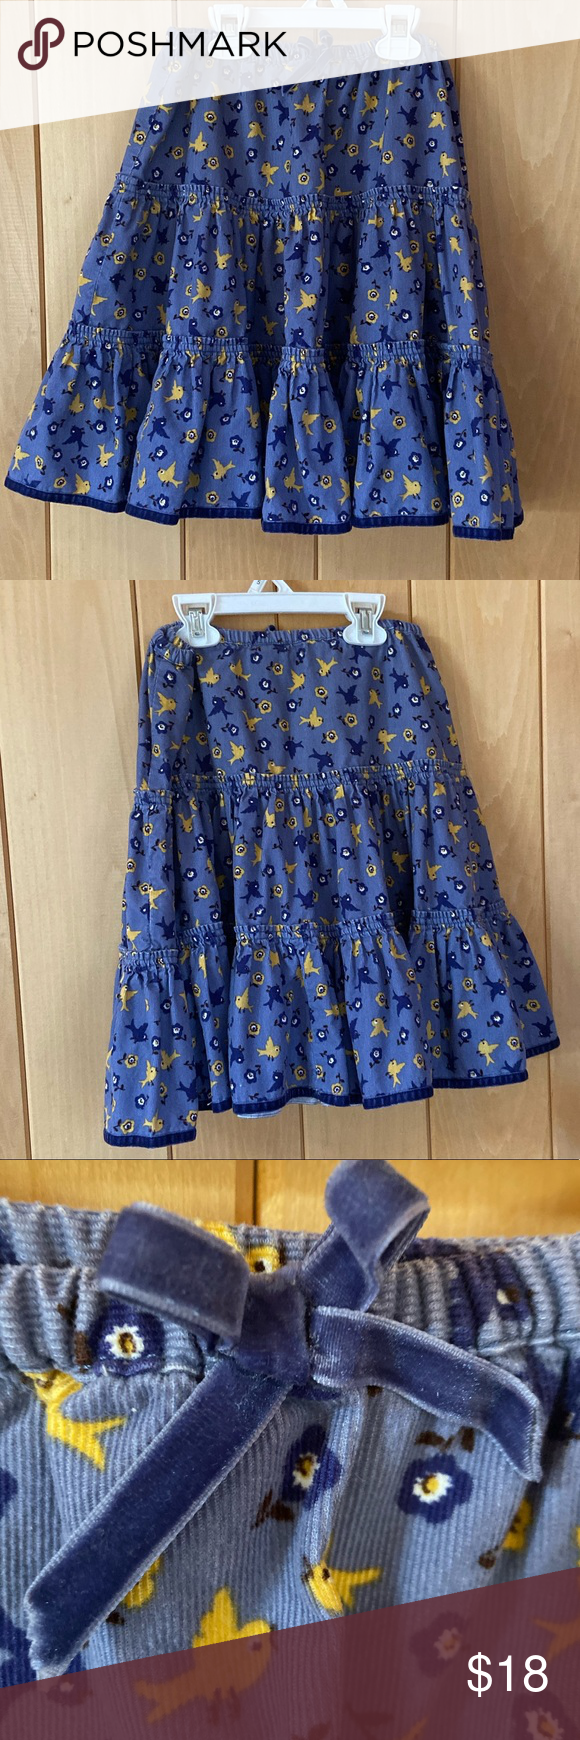 Mini Boden corduroy tiered twirl skirt So cute! Mini Boden corduroy tiered twirl skirt with sweet bird print and ribbon detail at waist. Good used condition. Size is 7-8 but waist seems larger and has a good amount of stretch. Mini Boden Bottoms Skirts #twirlskirt